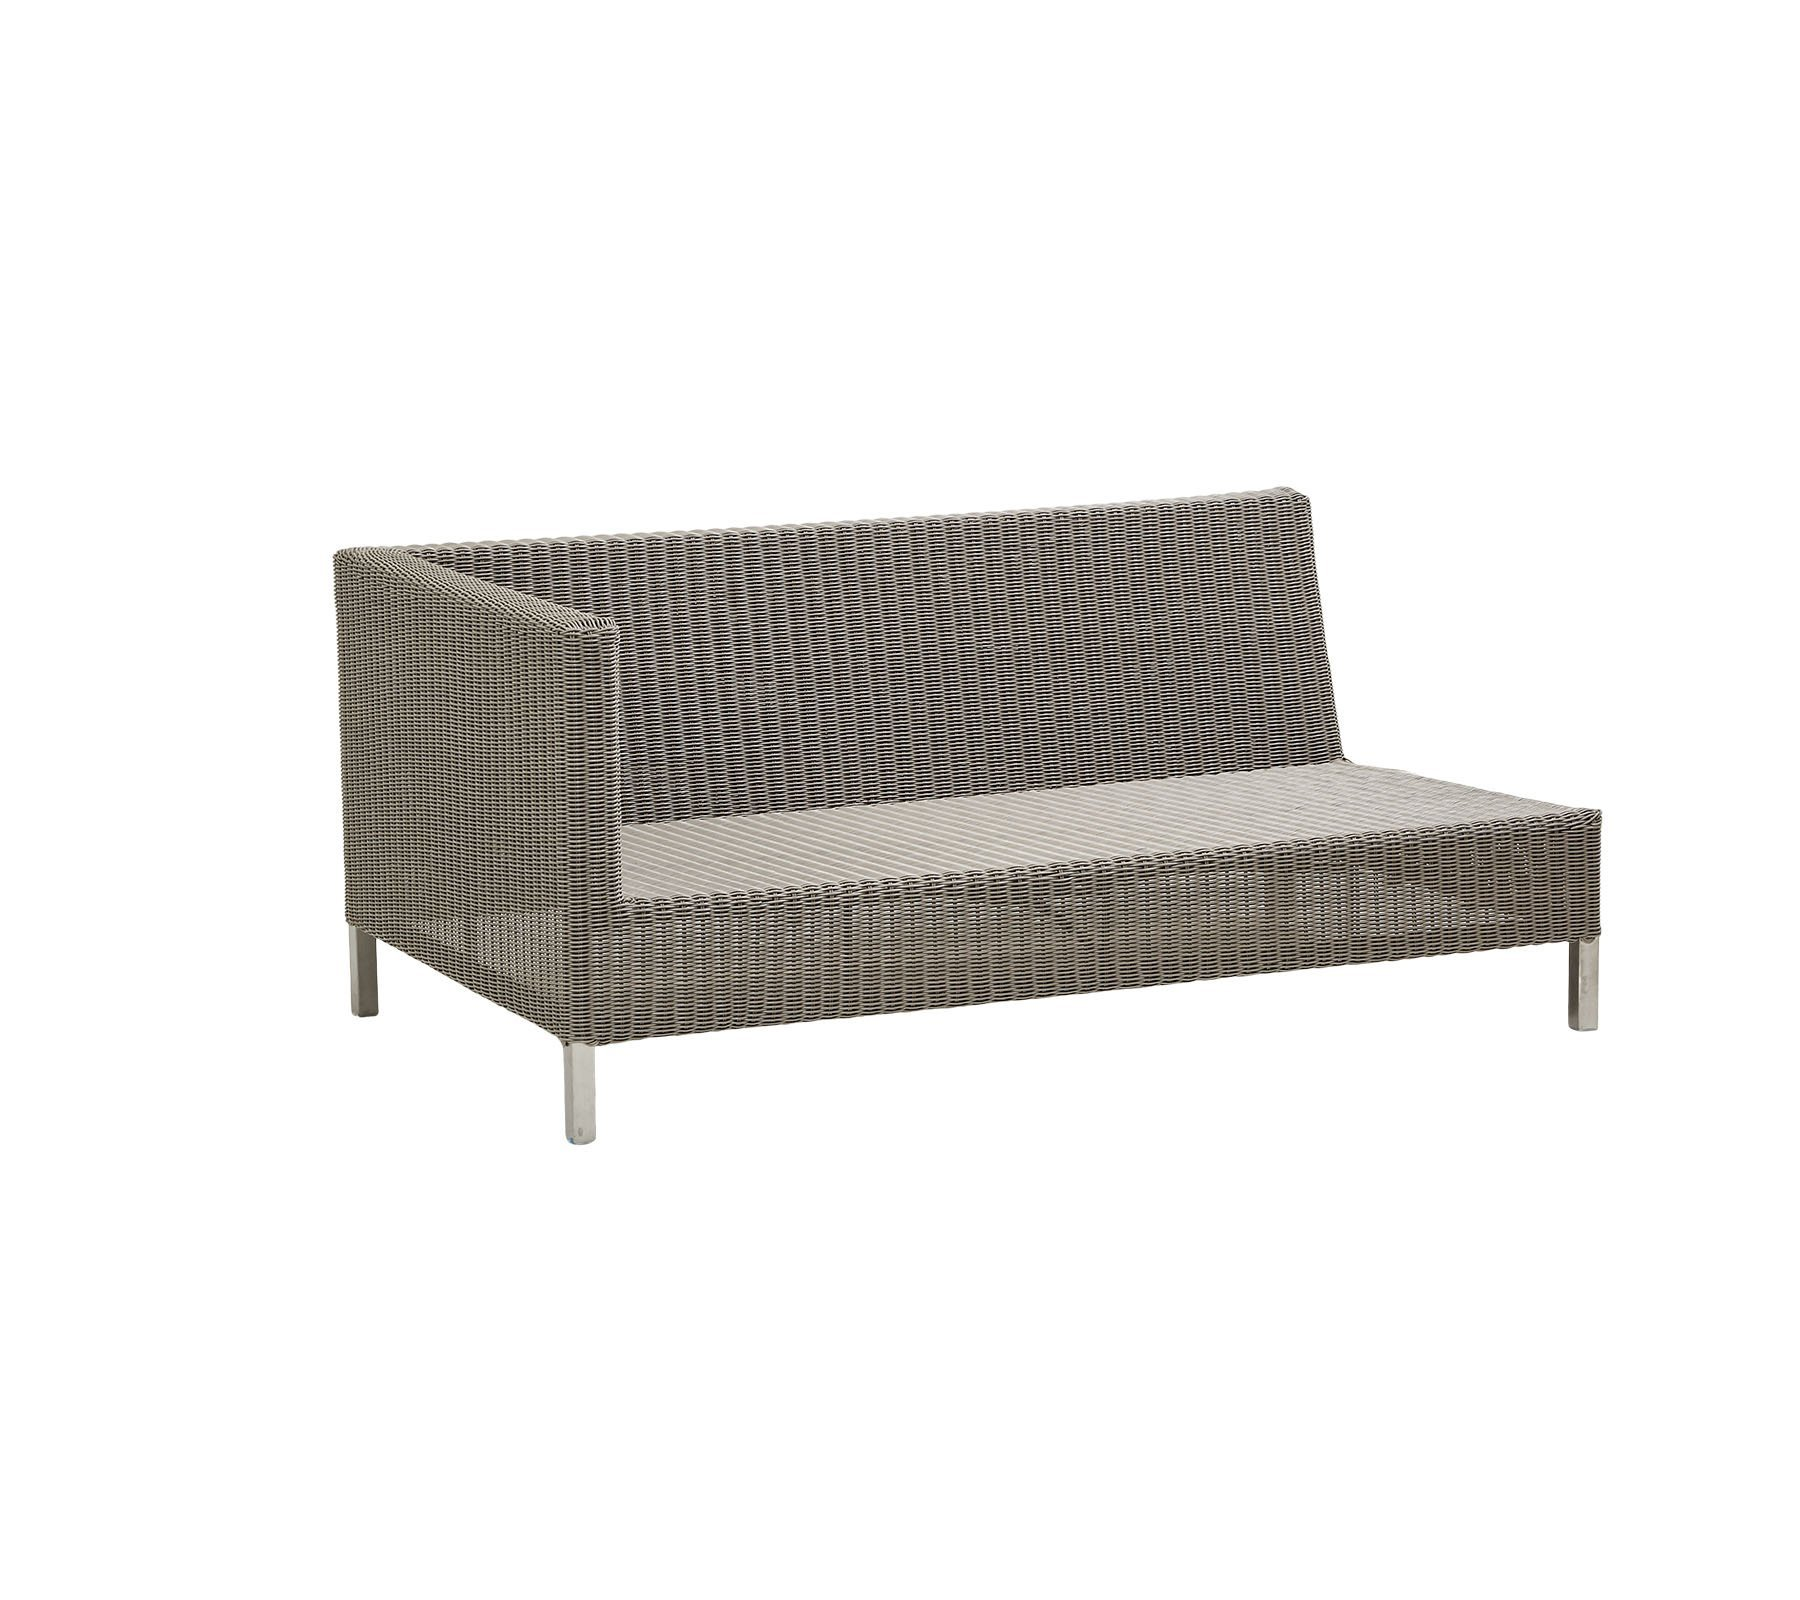 Connect 2 Seat Right Module Sofa modular from Cane-line